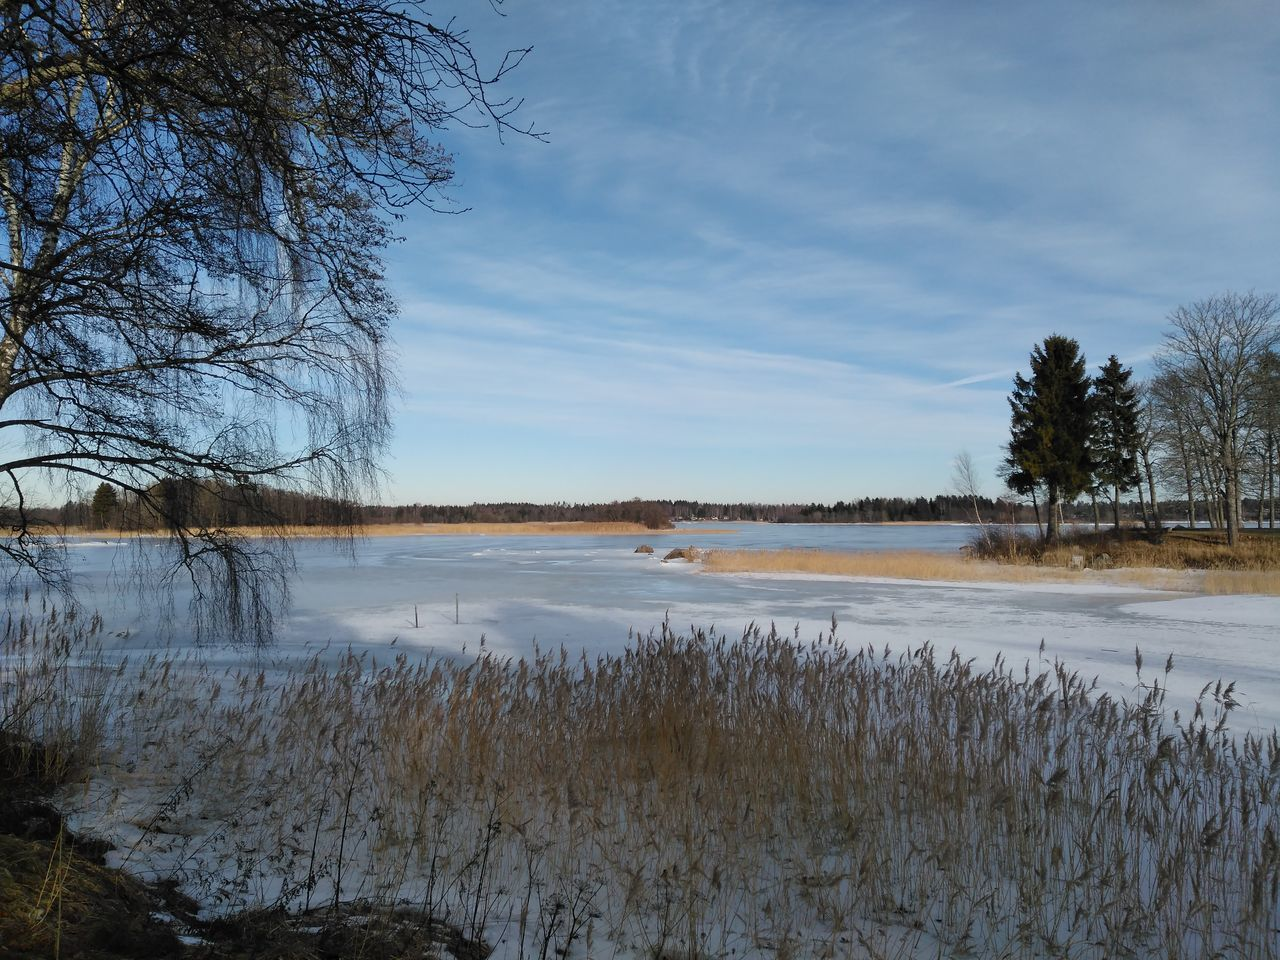 sky, tree, bare tree, nature, tranquil scene, tranquility, winter, beauty in nature, cold temperature, scenics, water, lake, snow, no people, landscape, outdoors, day, cloud - sky, branch, grass